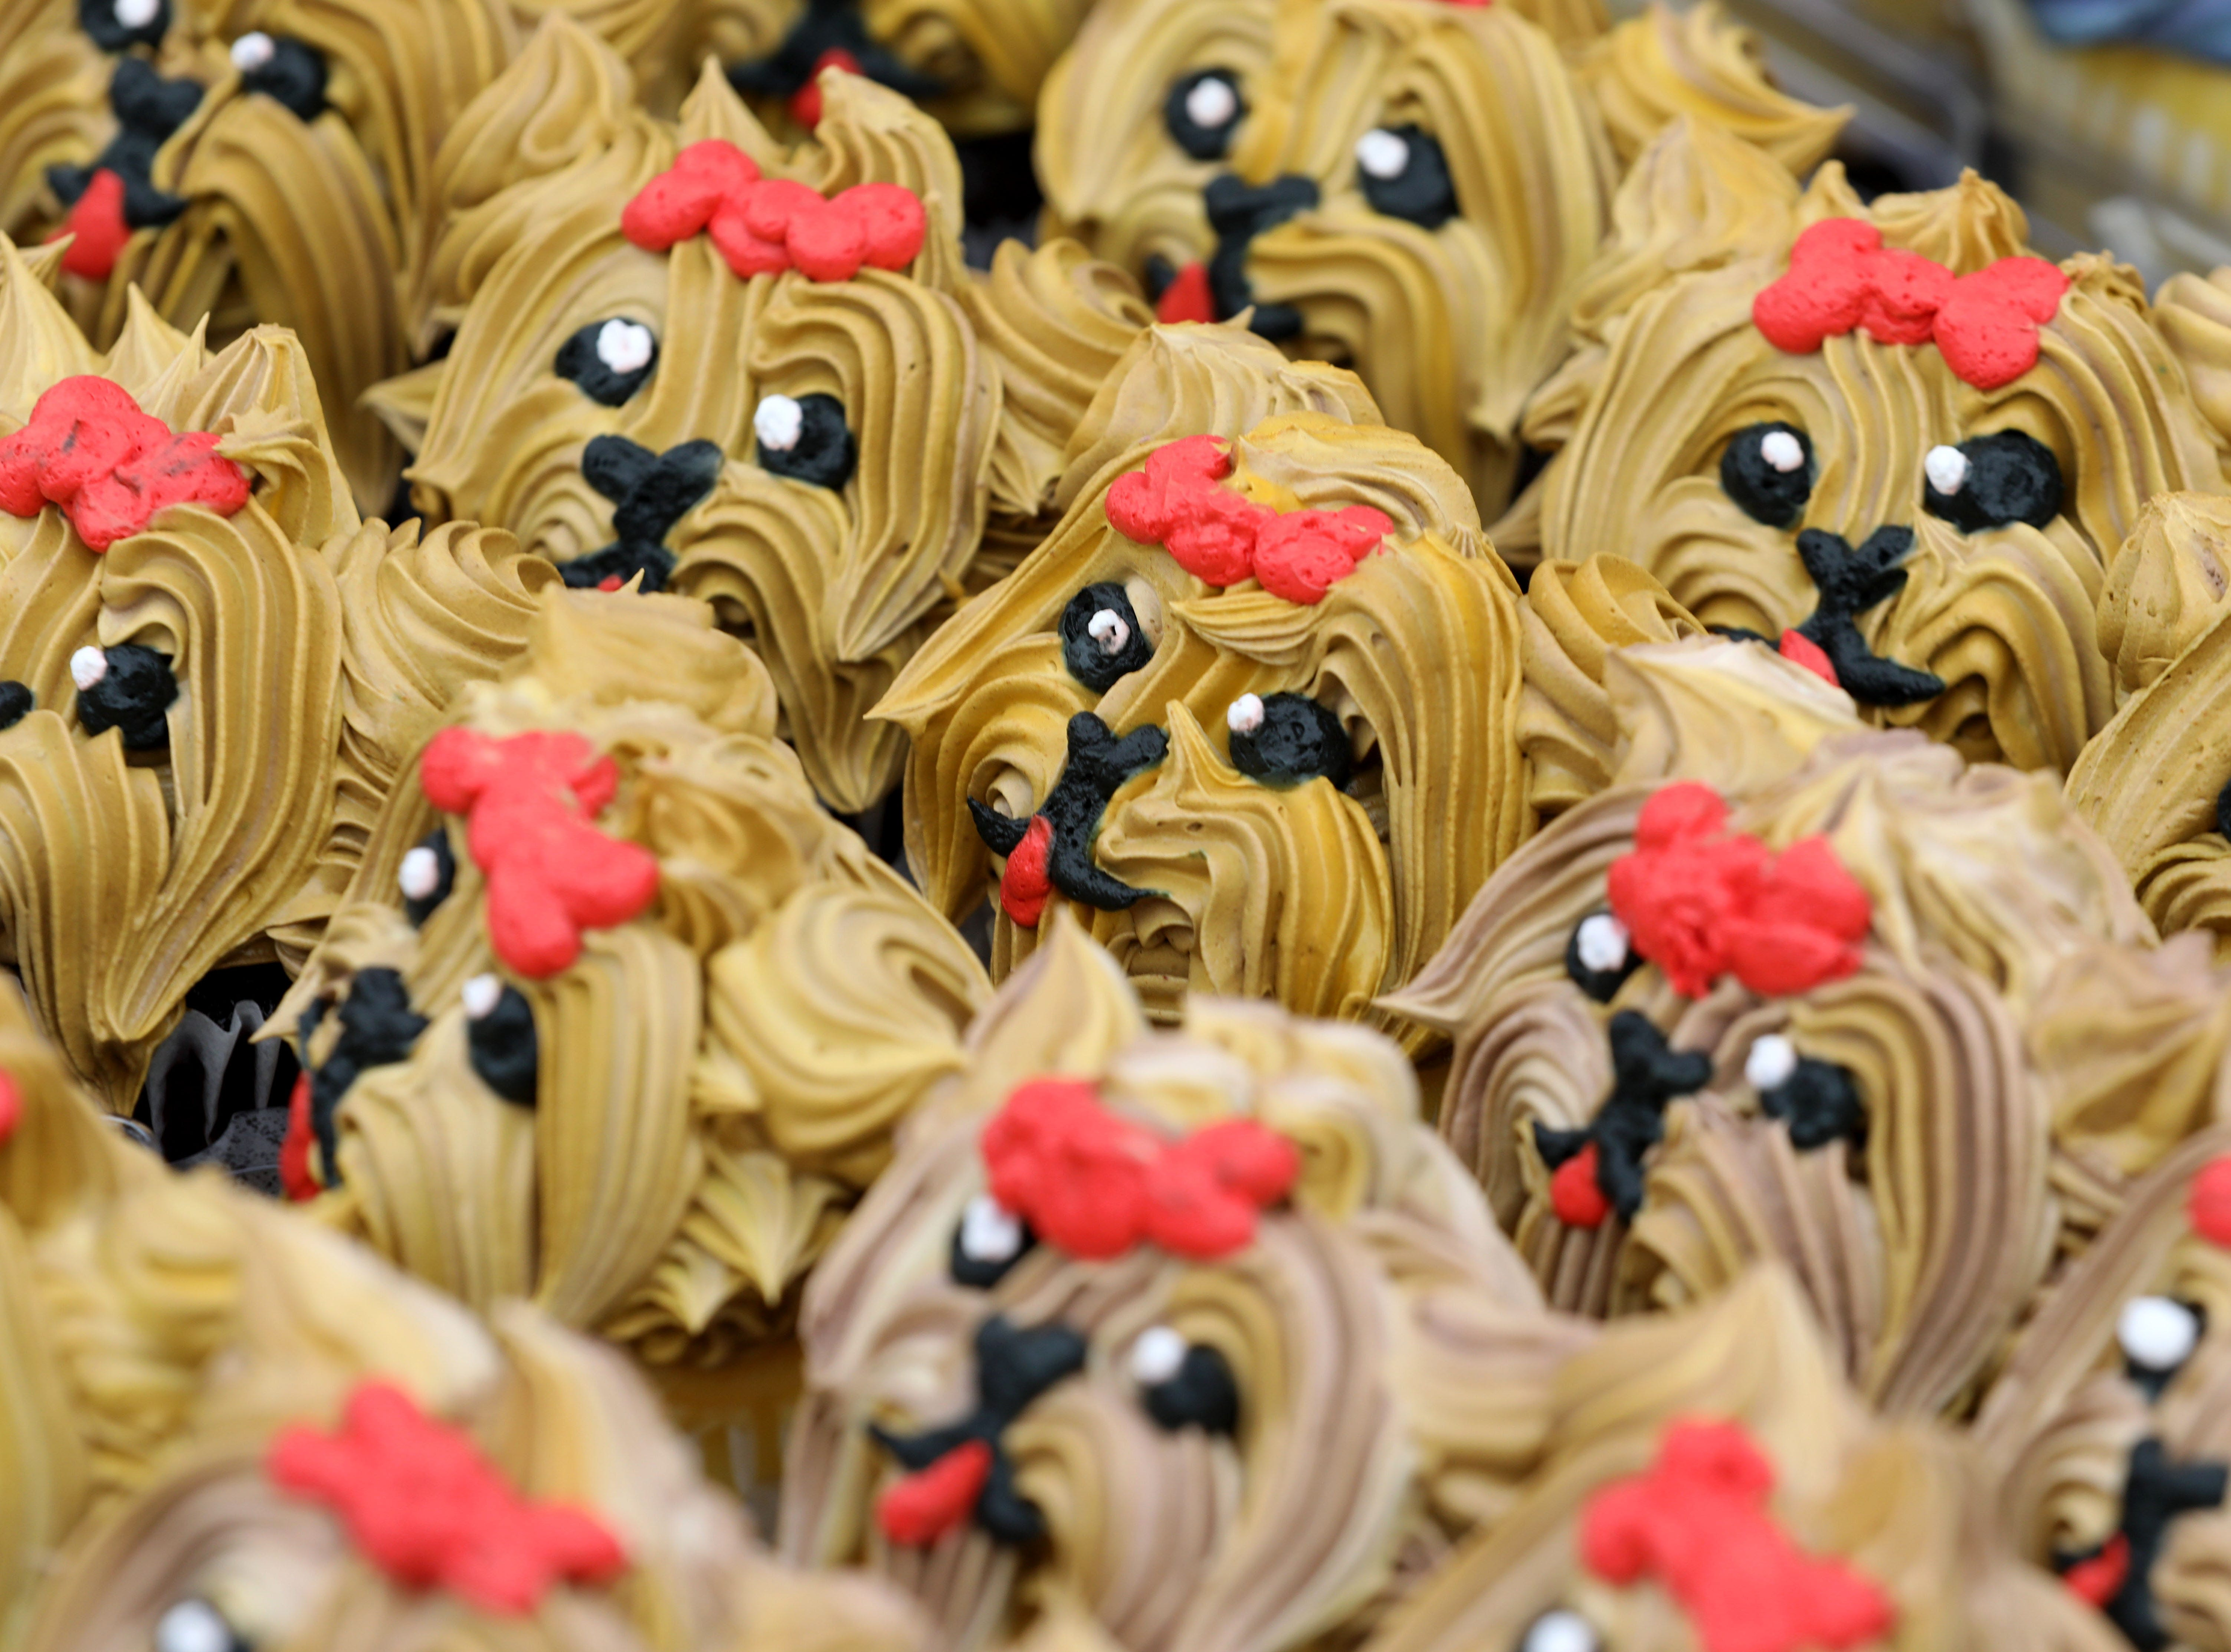 Elaborate dog frosted cupcakes from the Acme Supermarkets booth are pictured during the K104.7 Cupcake Festival at the Stormville Airport, May 4, 2019. See more photos and a video at Poughkeepsiejournal.com.